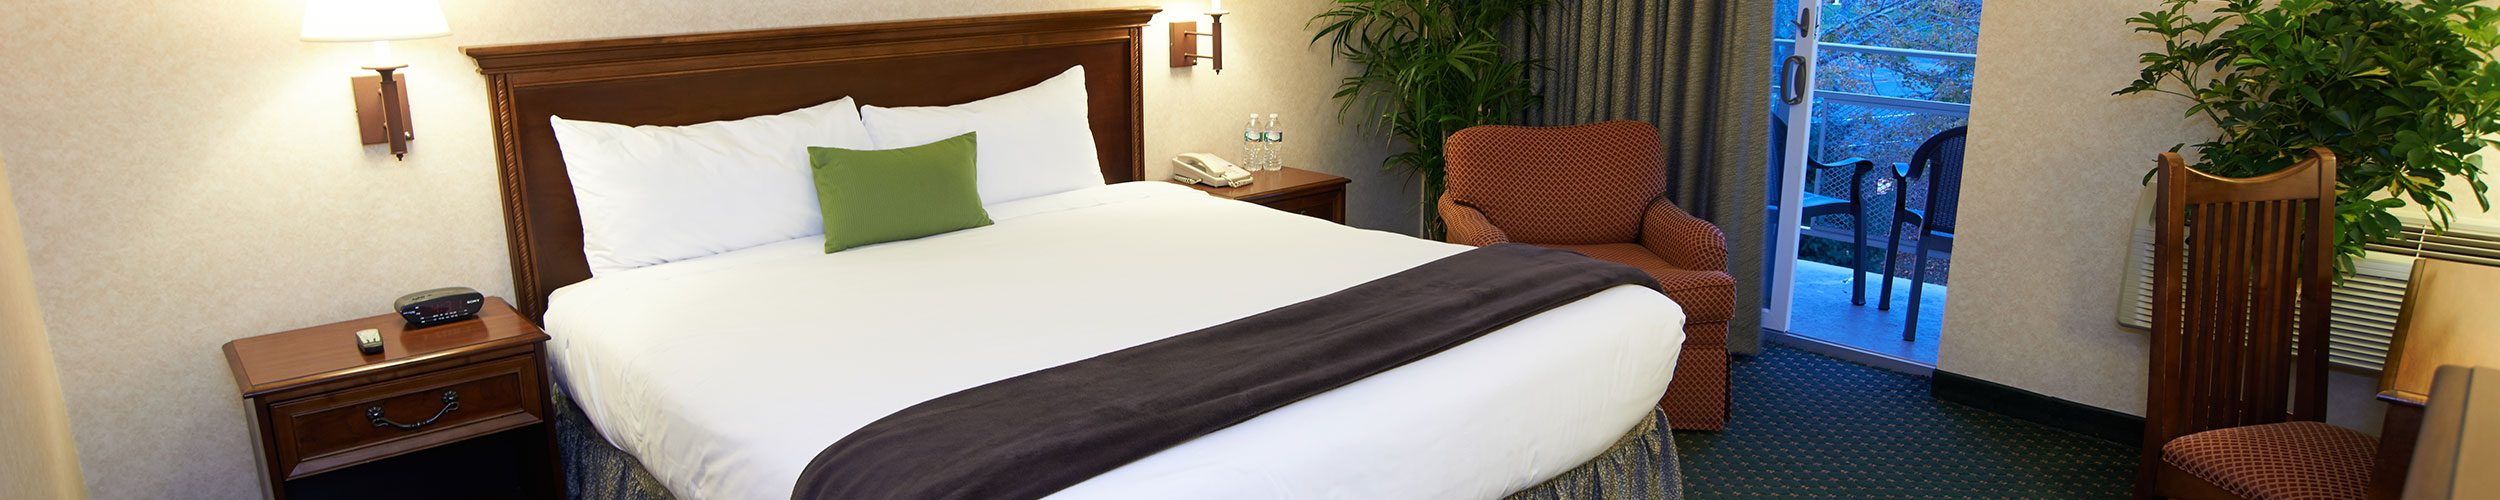 Heritage House Hotel King size bed